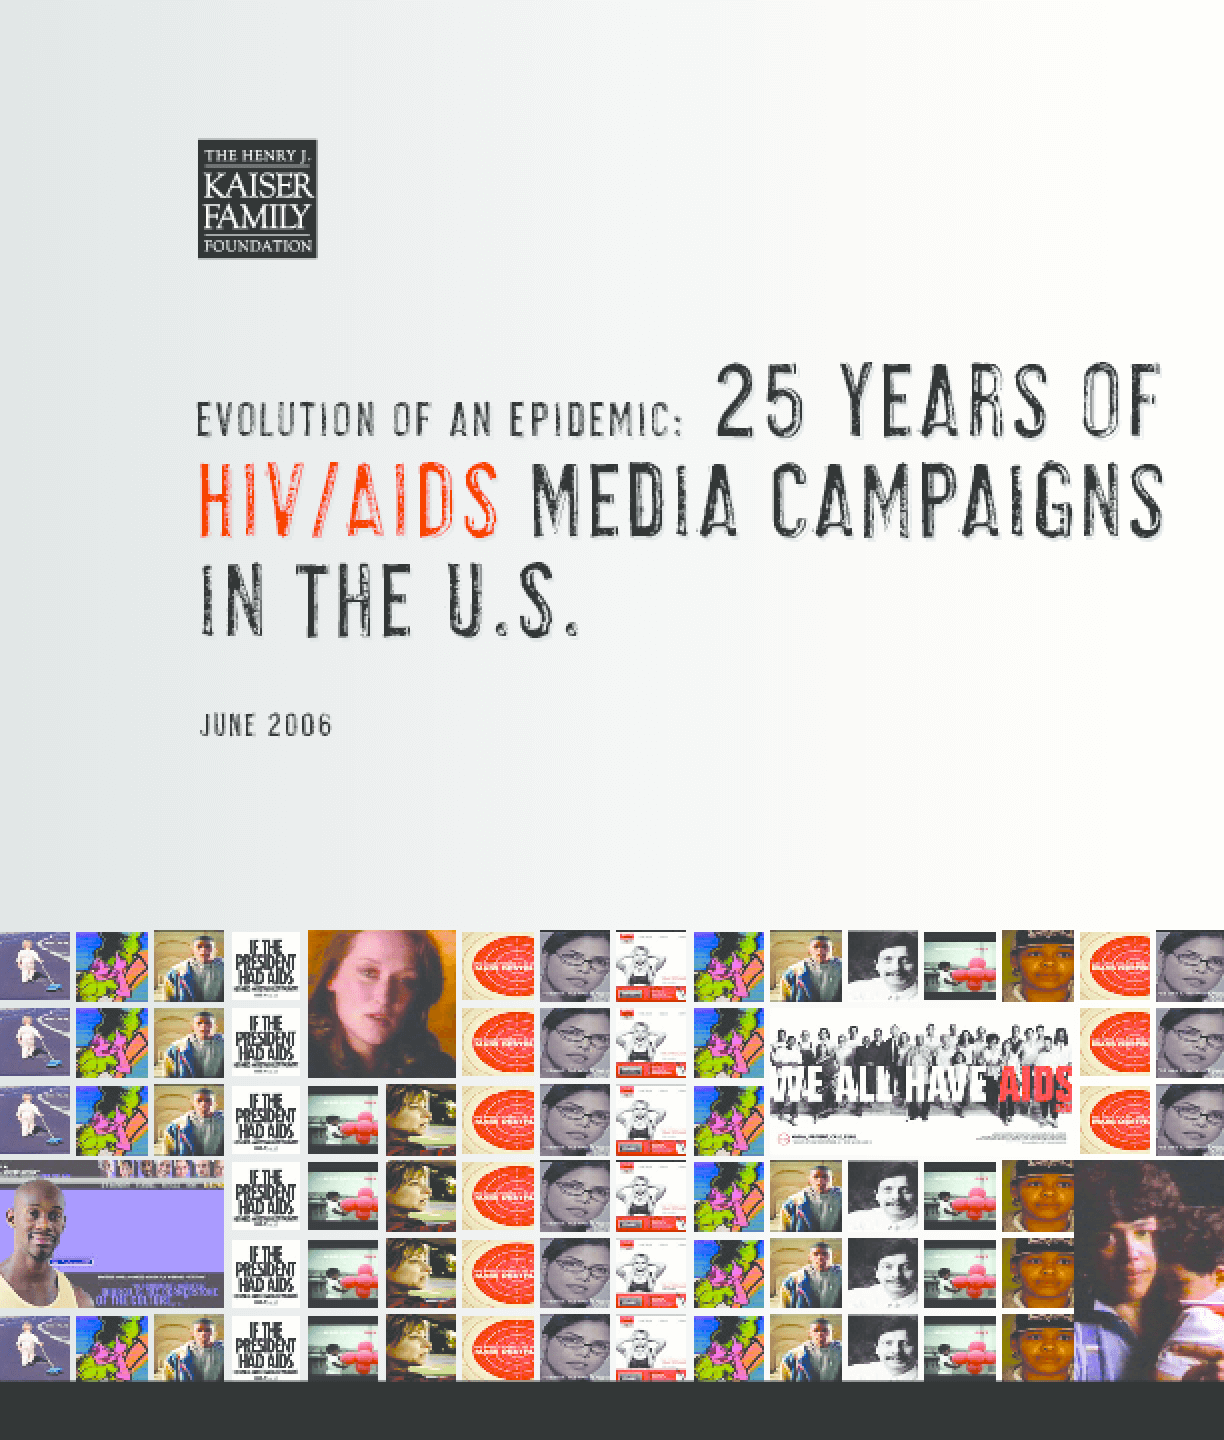 Evolution of an Epidemic: 25 Years of HIV/AIDS Media Campaigns in the U.S.